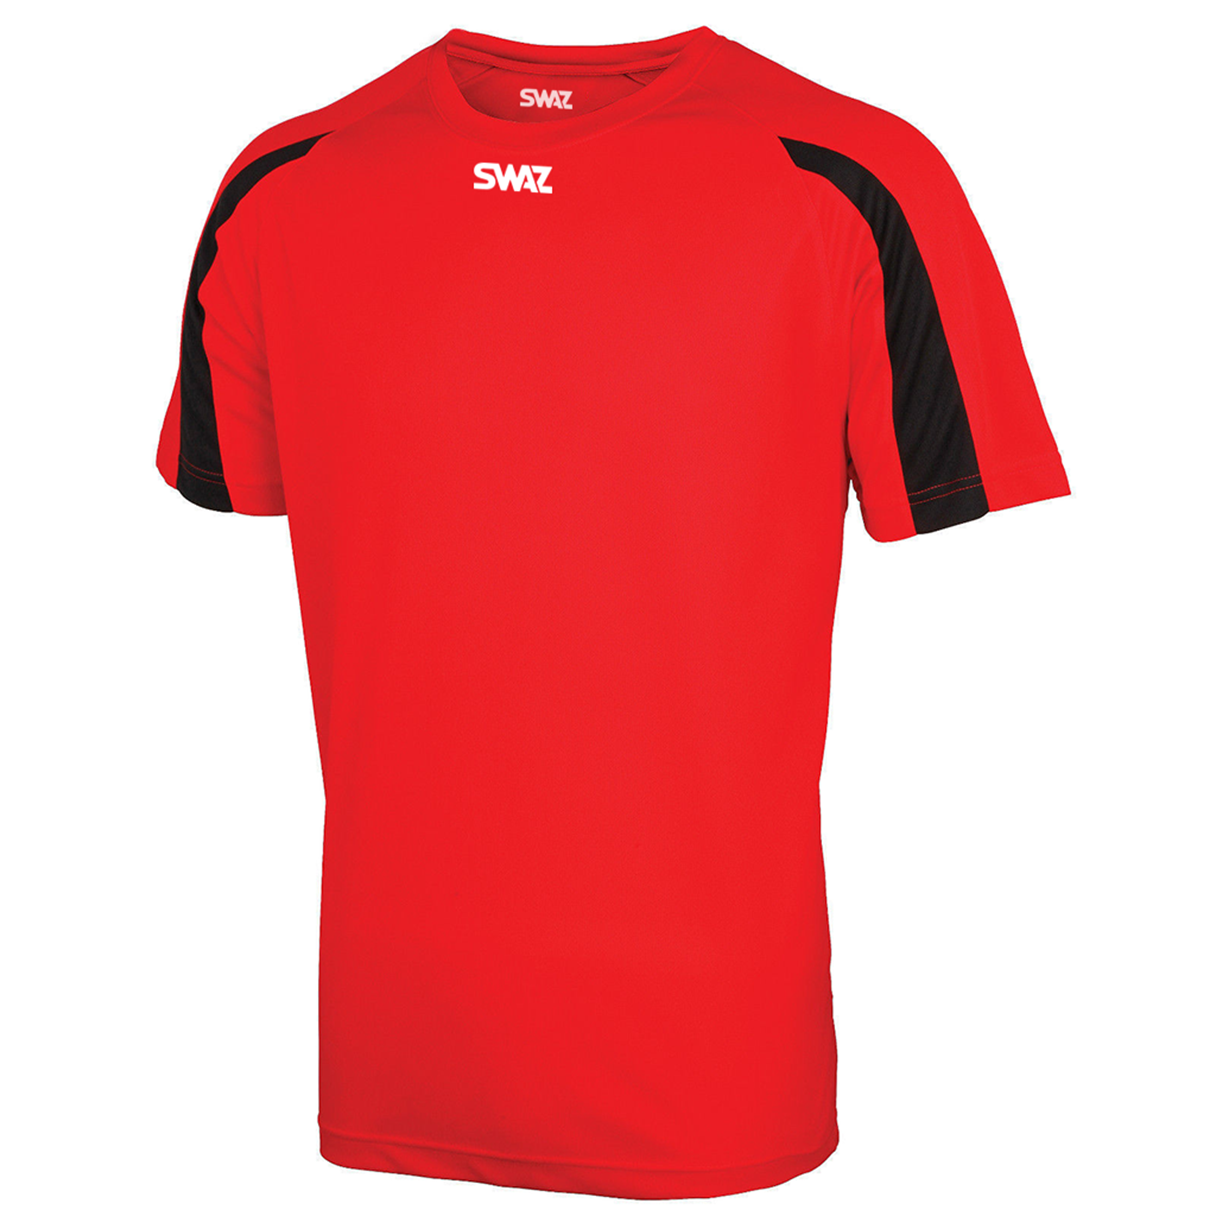 SWAZ Premier Training T-Shirt – Red/Black